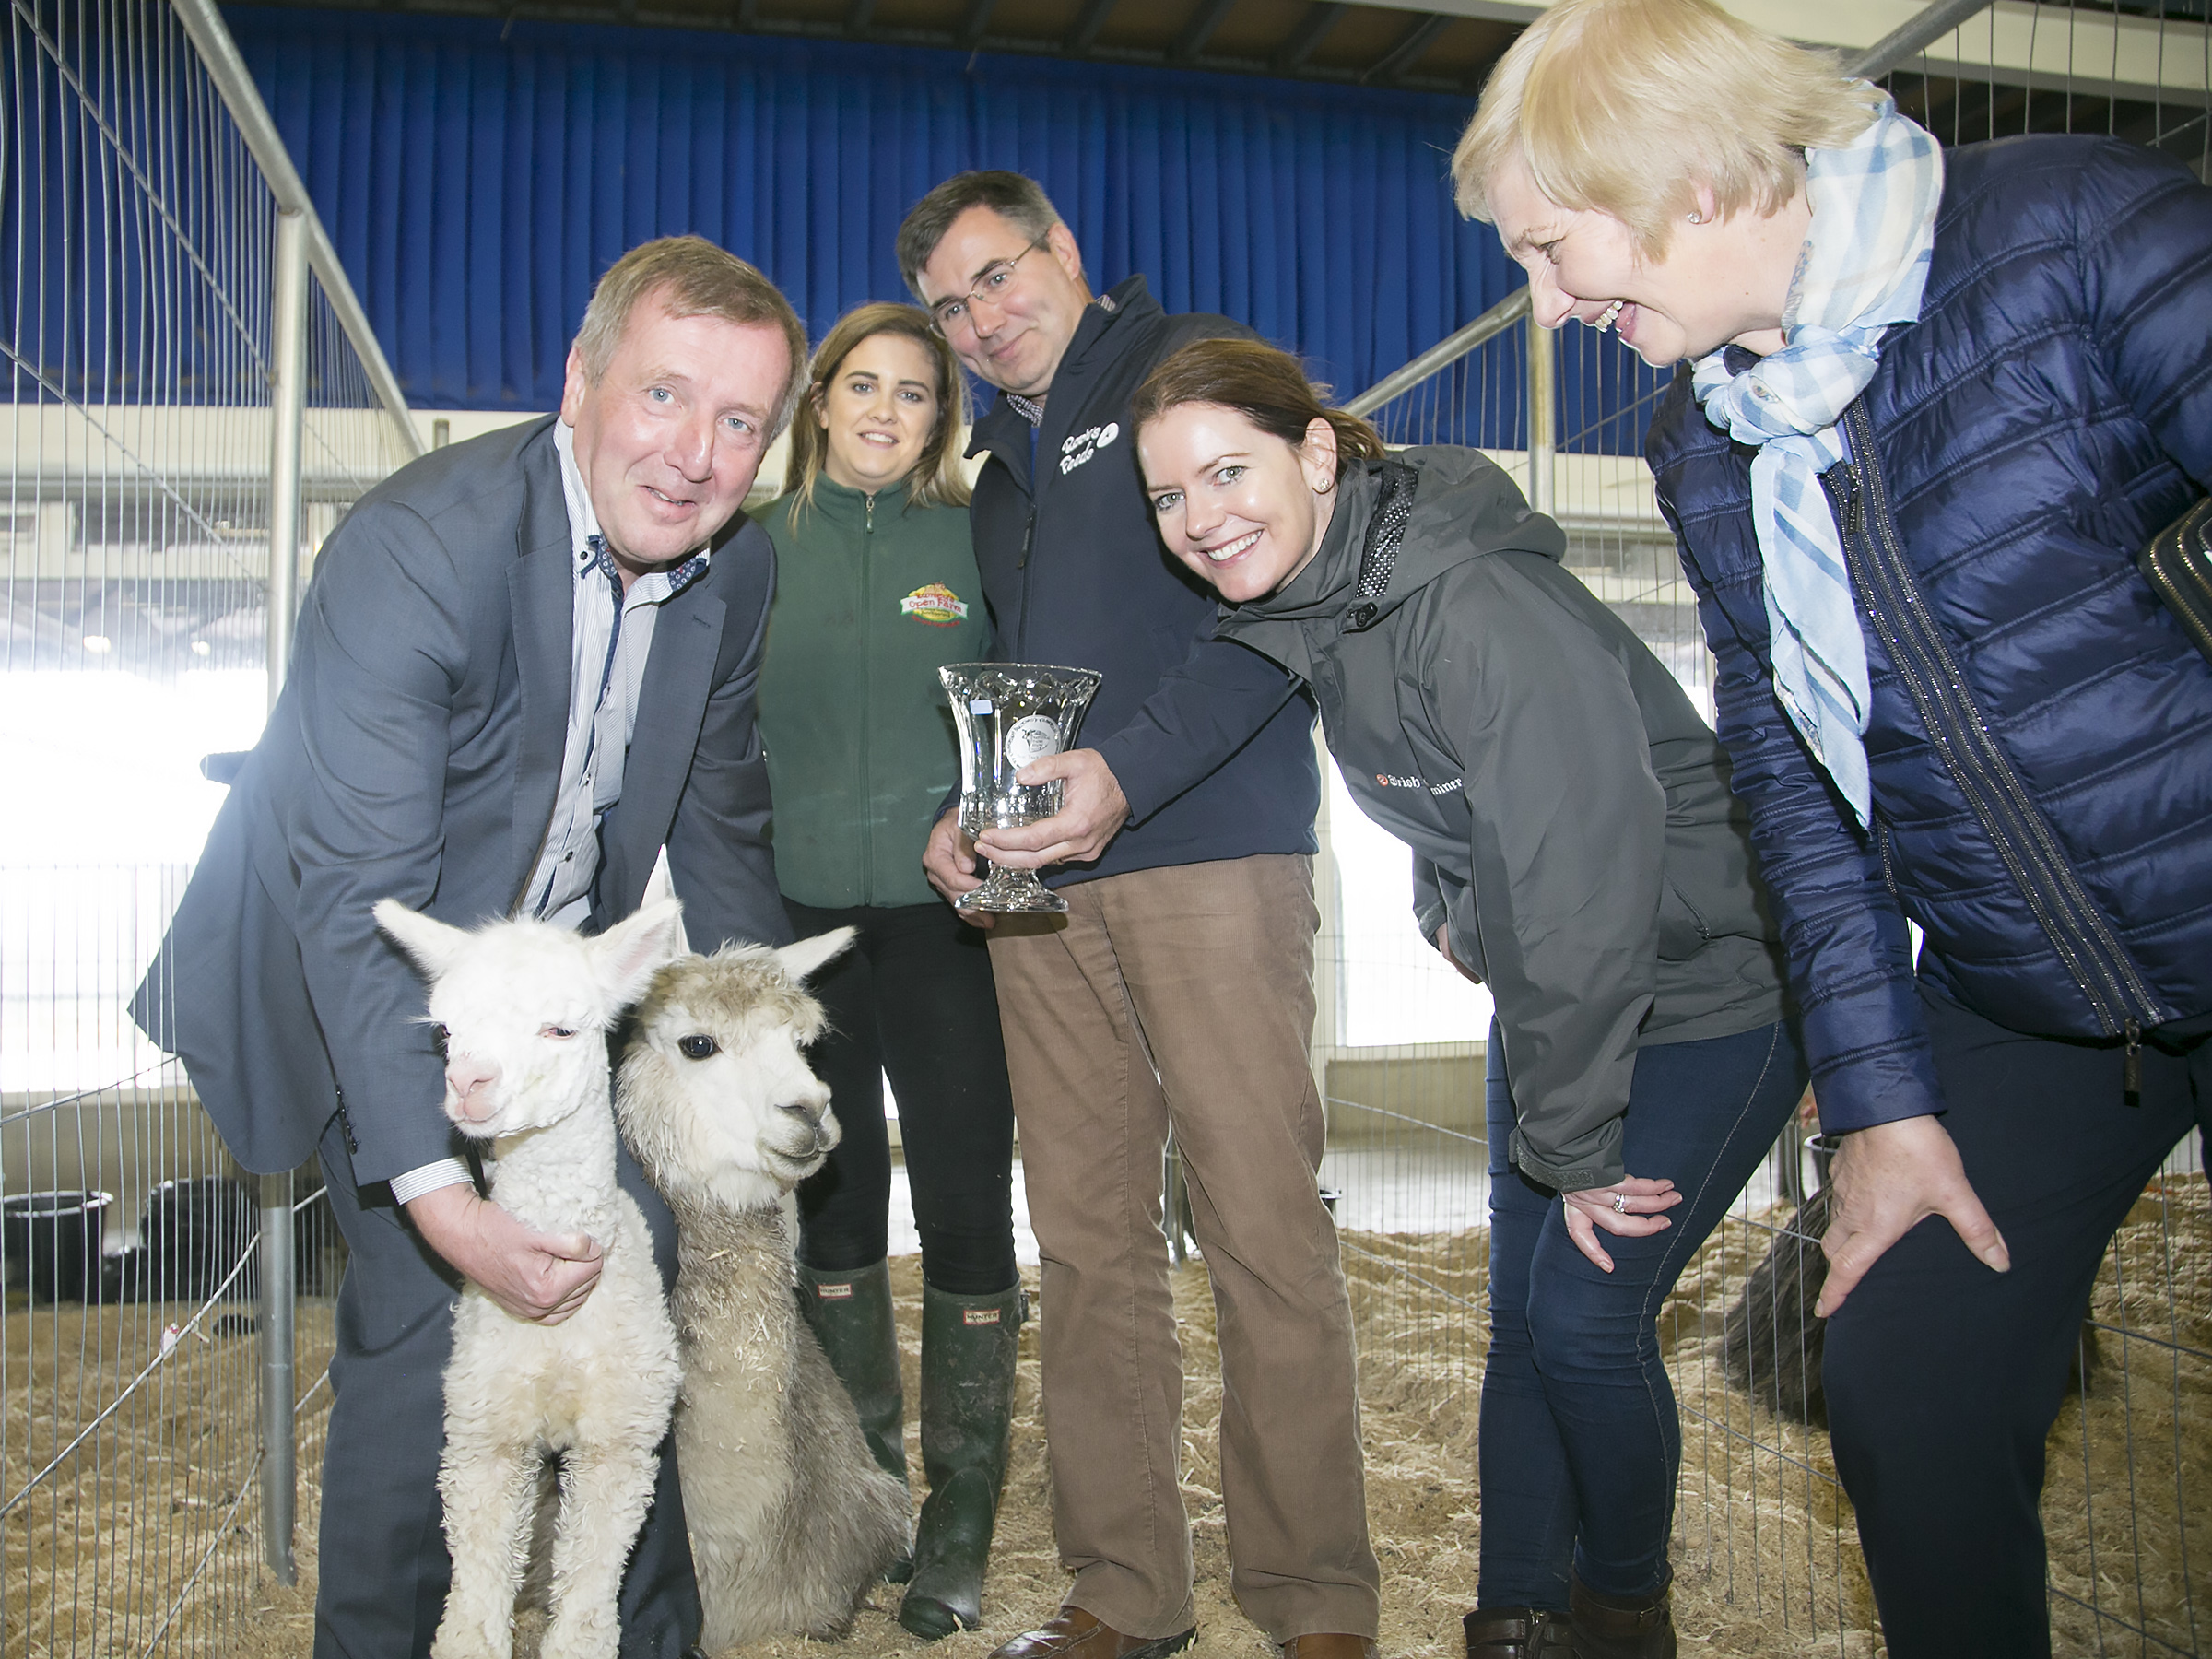 Minister Michael Creed with Niamh Rigney, Rumleys receiving her award from Richaed Gleeson, Rocher Seeds, Sponsor with judges Catriona Buckely and Breda Crowley, Irish Examiner